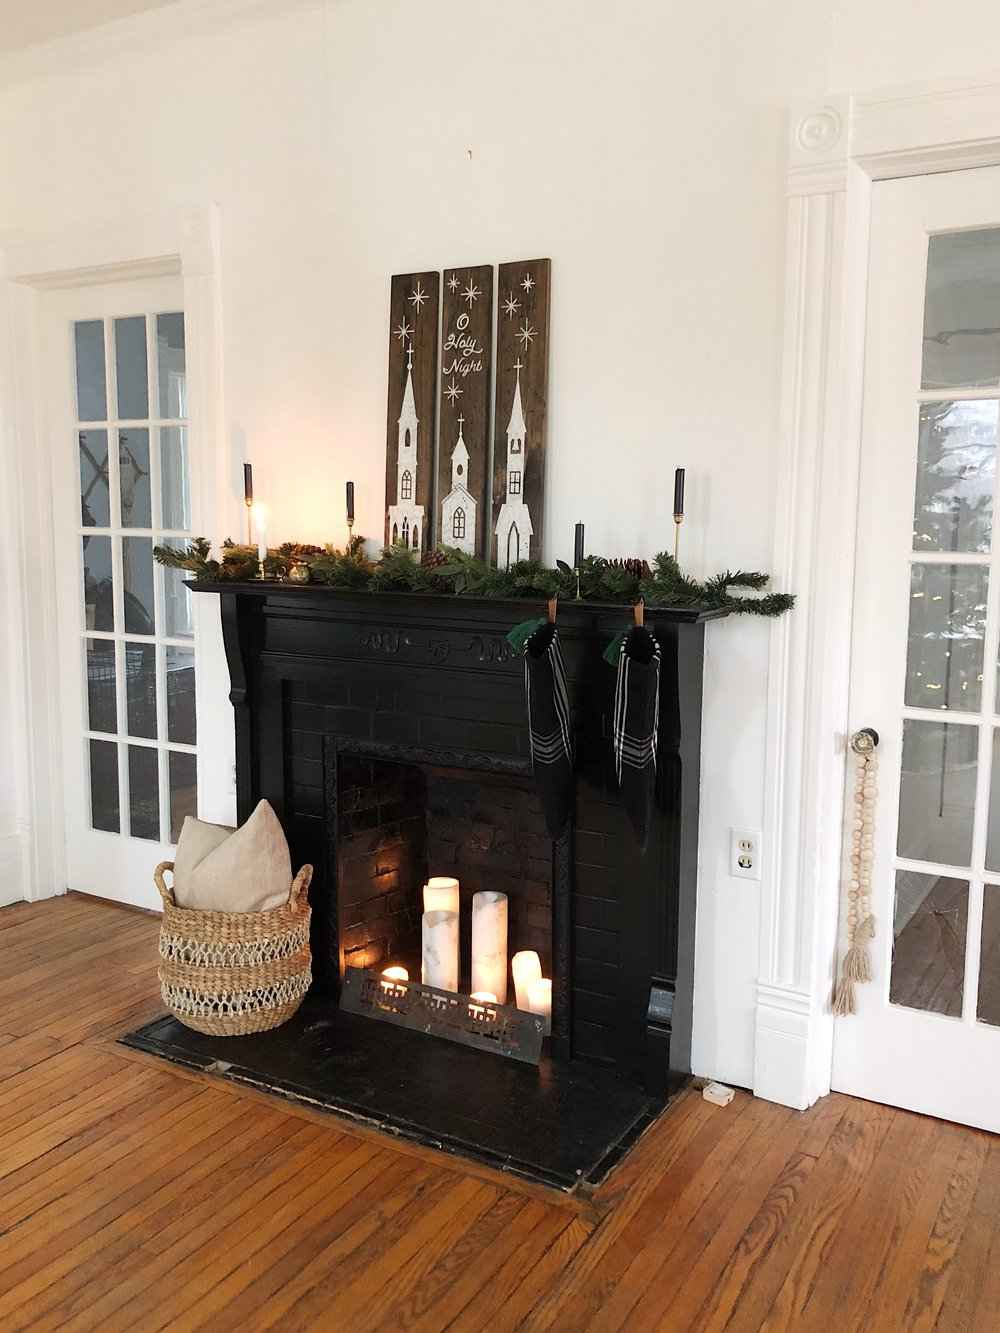 Black Painted Fireplace Ideas for Non working Fireplaces Candles in Fireplace mantle decor Christmas decor